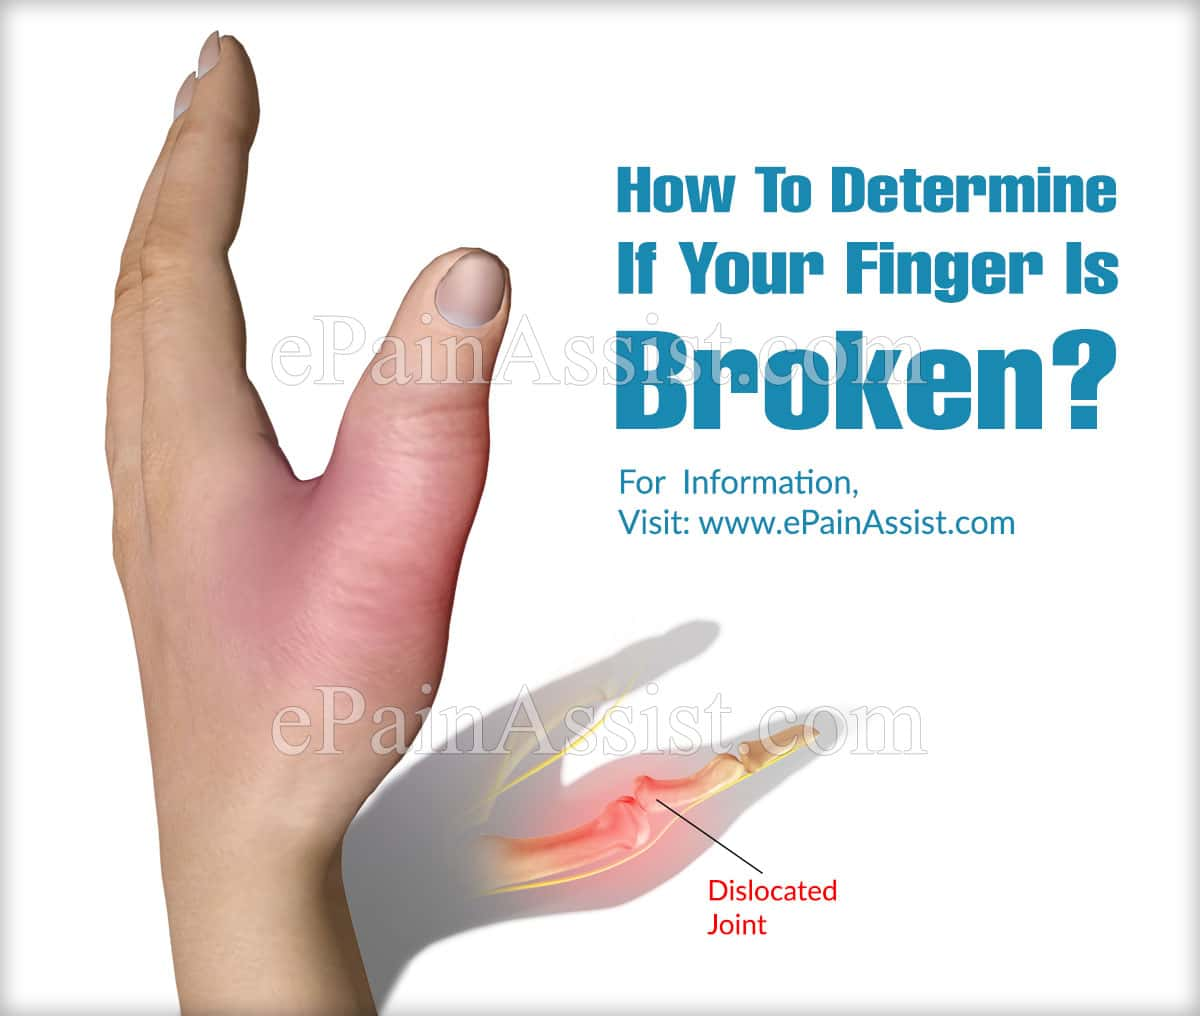 How To Determine If Your Finger Is Broken?